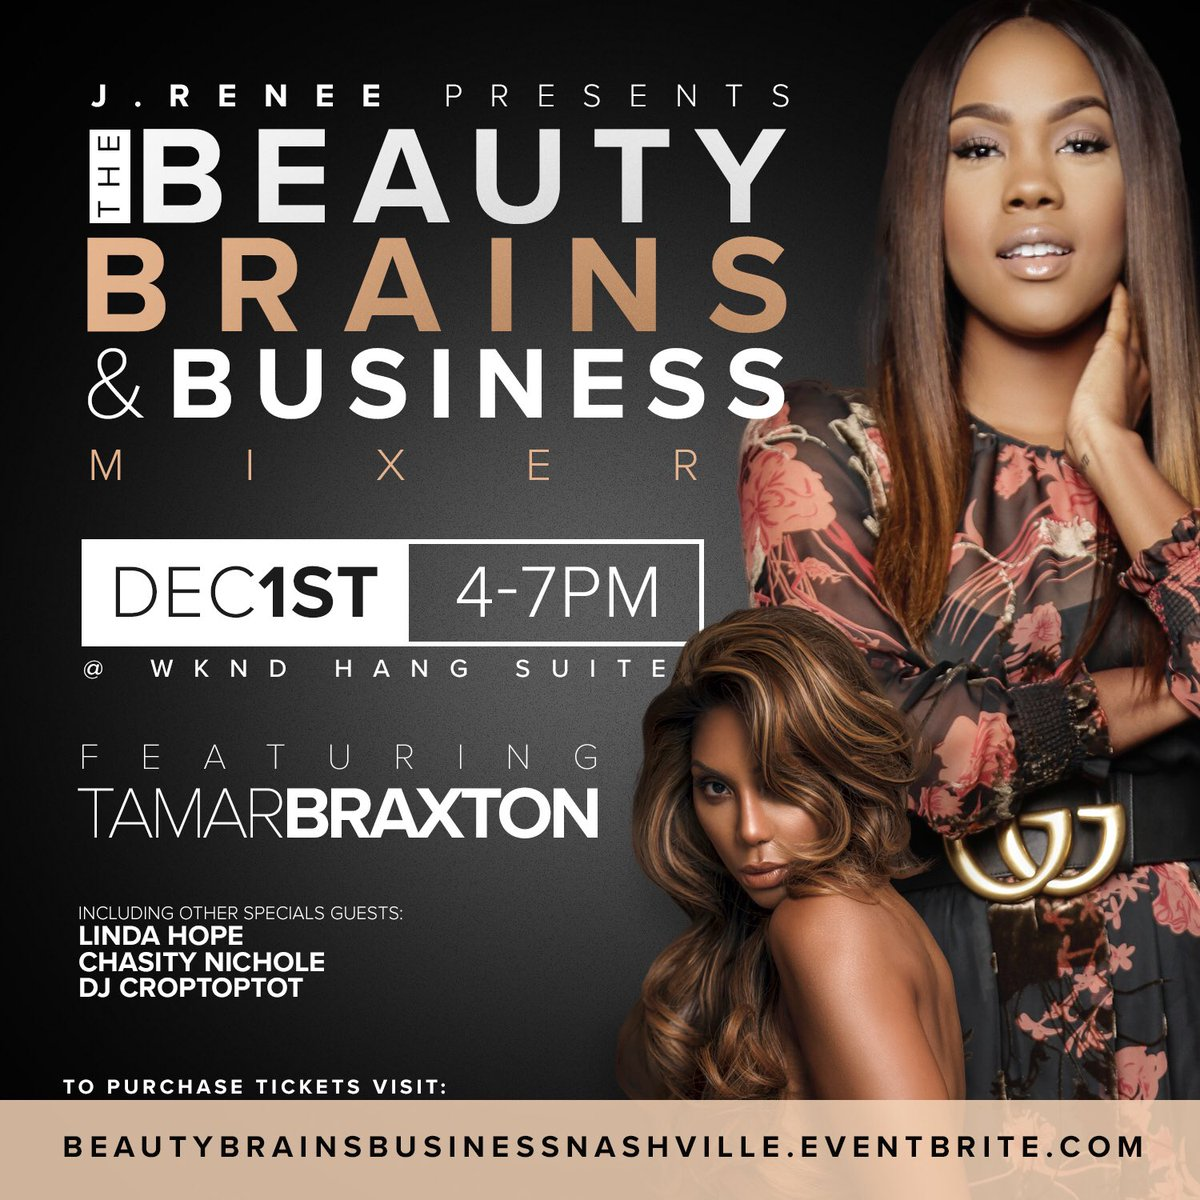 Tamar braxton nashville i need yall to meet me at i need yall to meet me at wkndhangsuite this friday before the show for sipandchill my exclusive meet and greet experience m4hsunfo